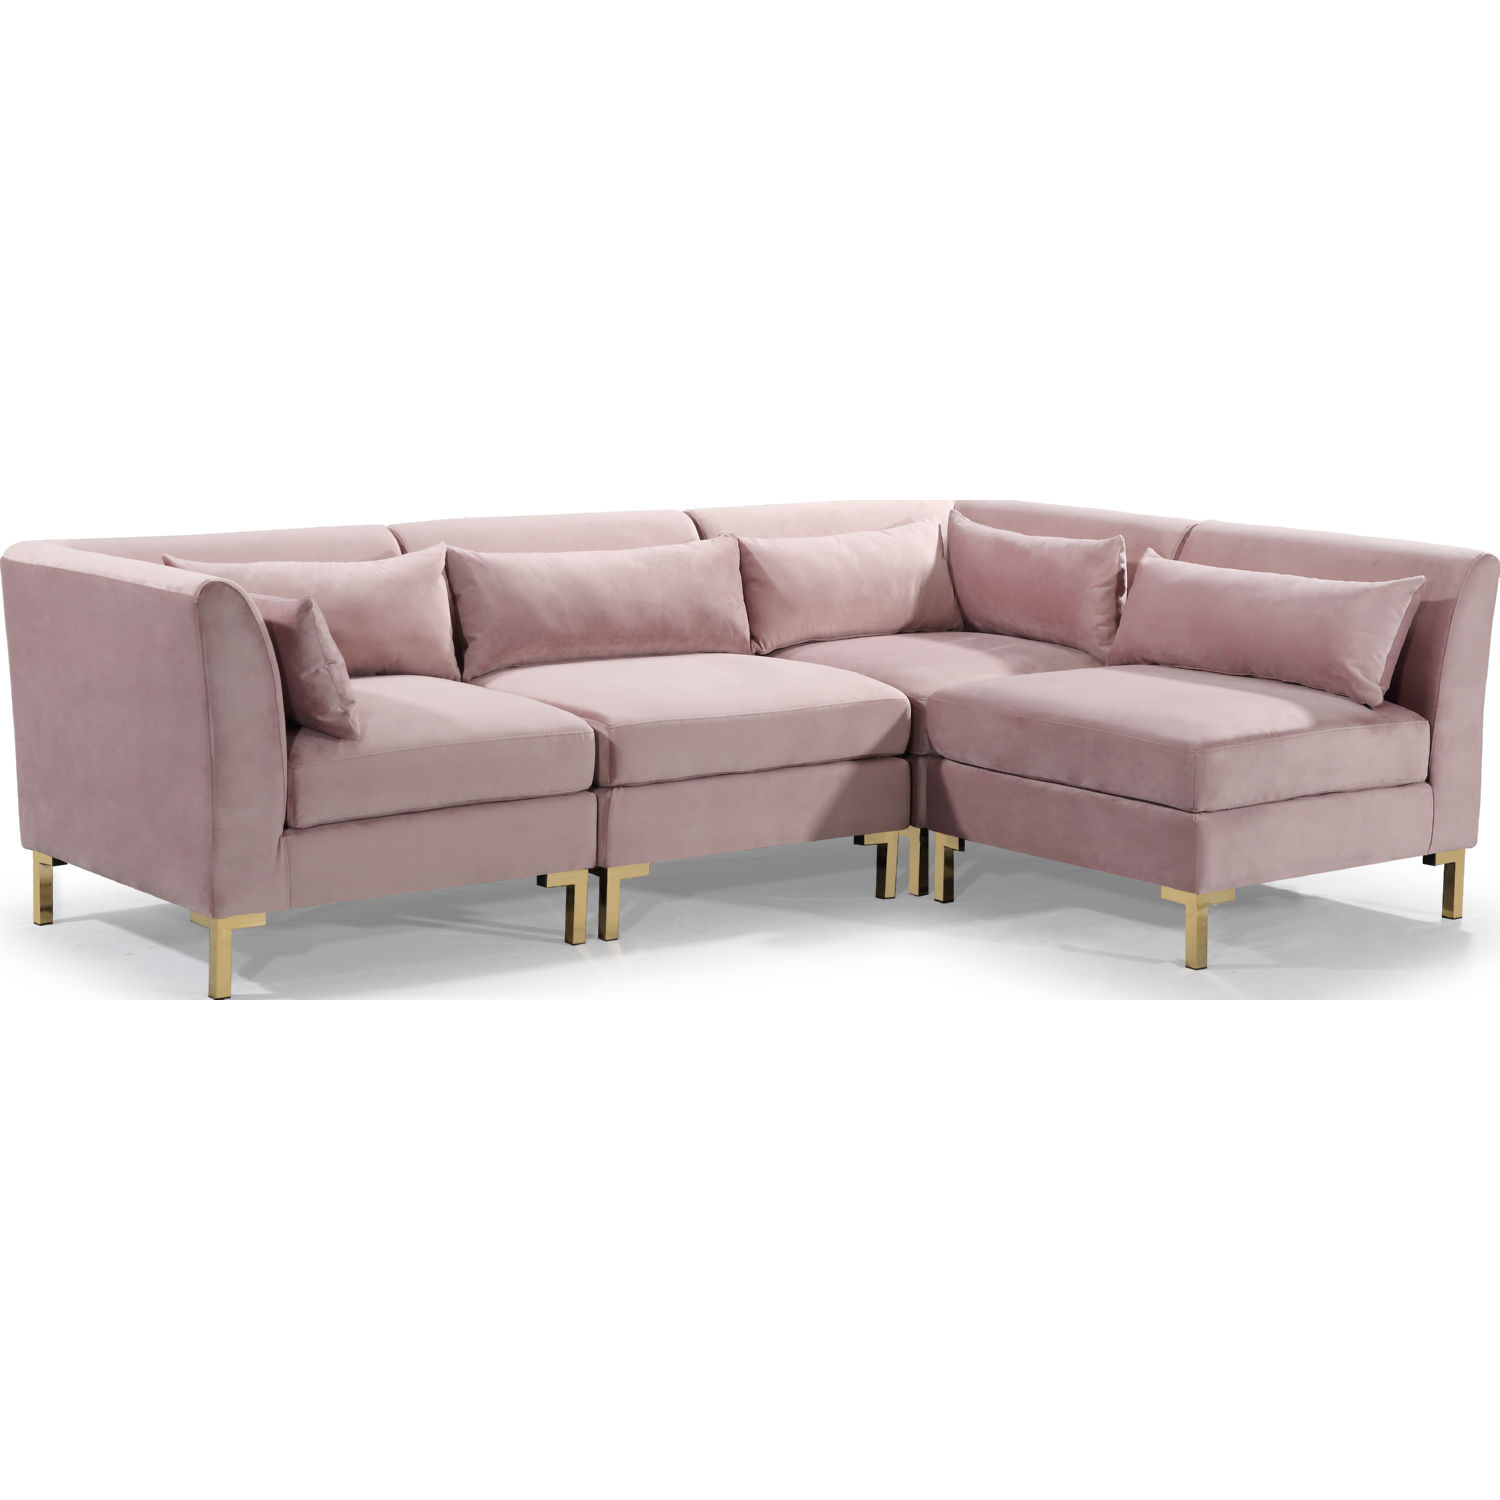 Girardi Modular Sectional Sofa in Blush Velvet on Gold Metal Legs by Chic  Home